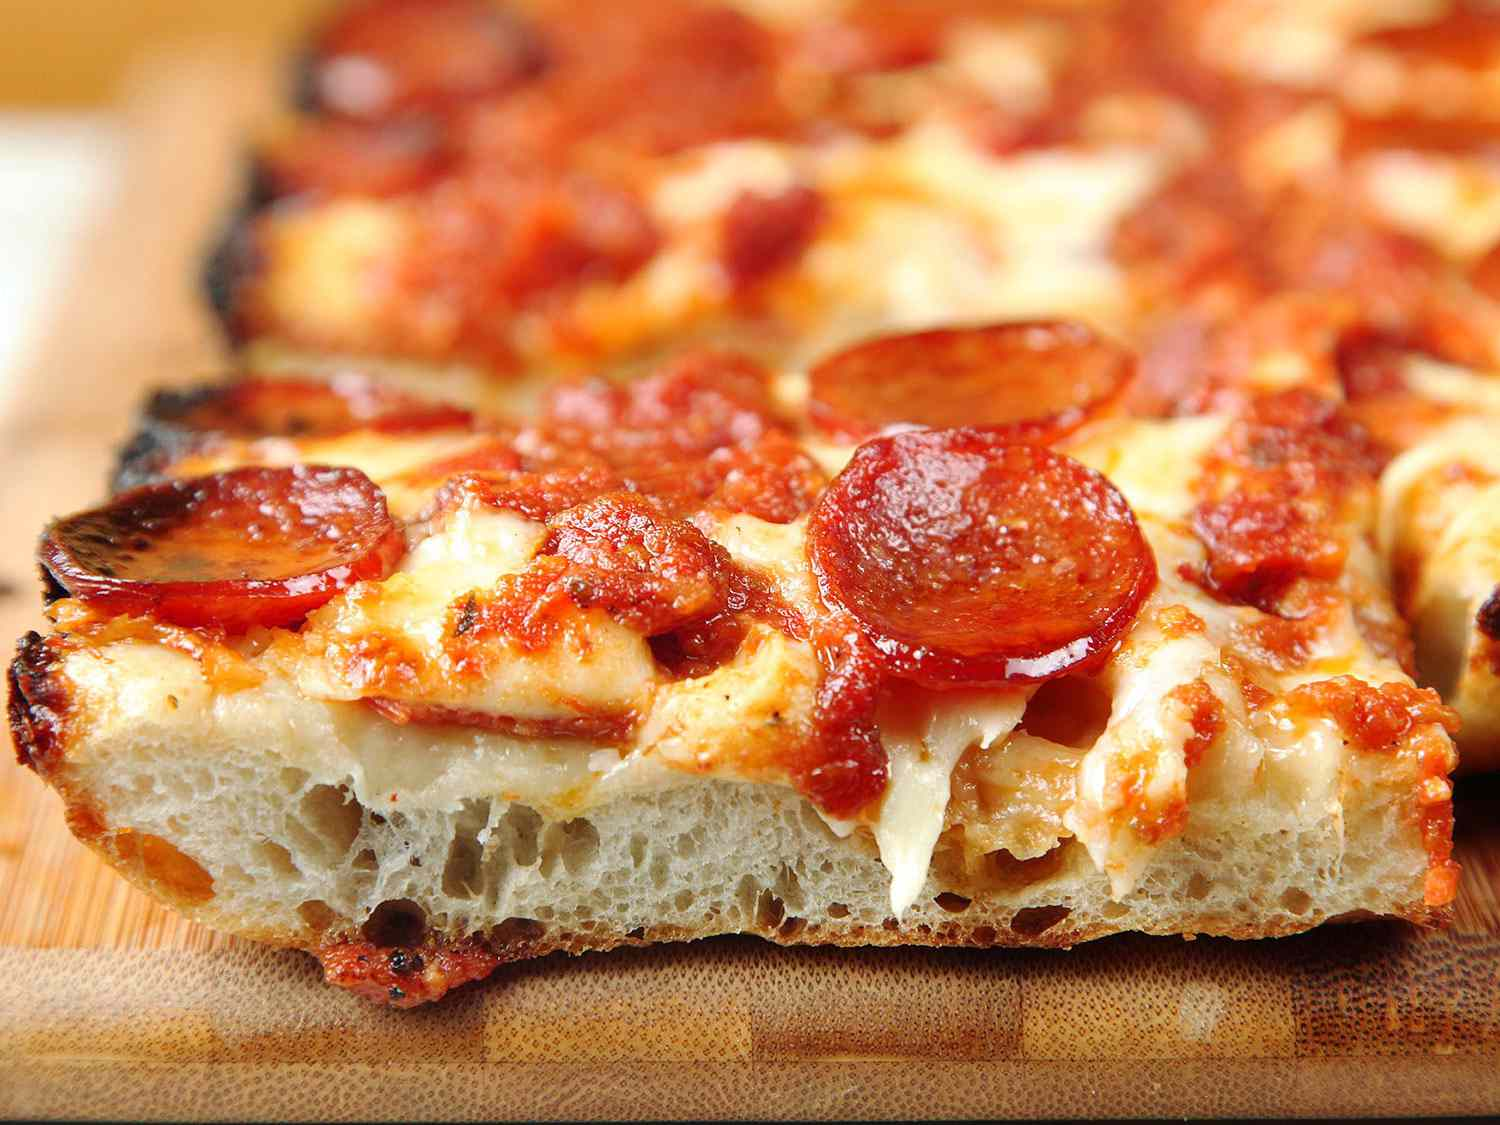 A slice of Detroit-style pizza resting on a cutting board